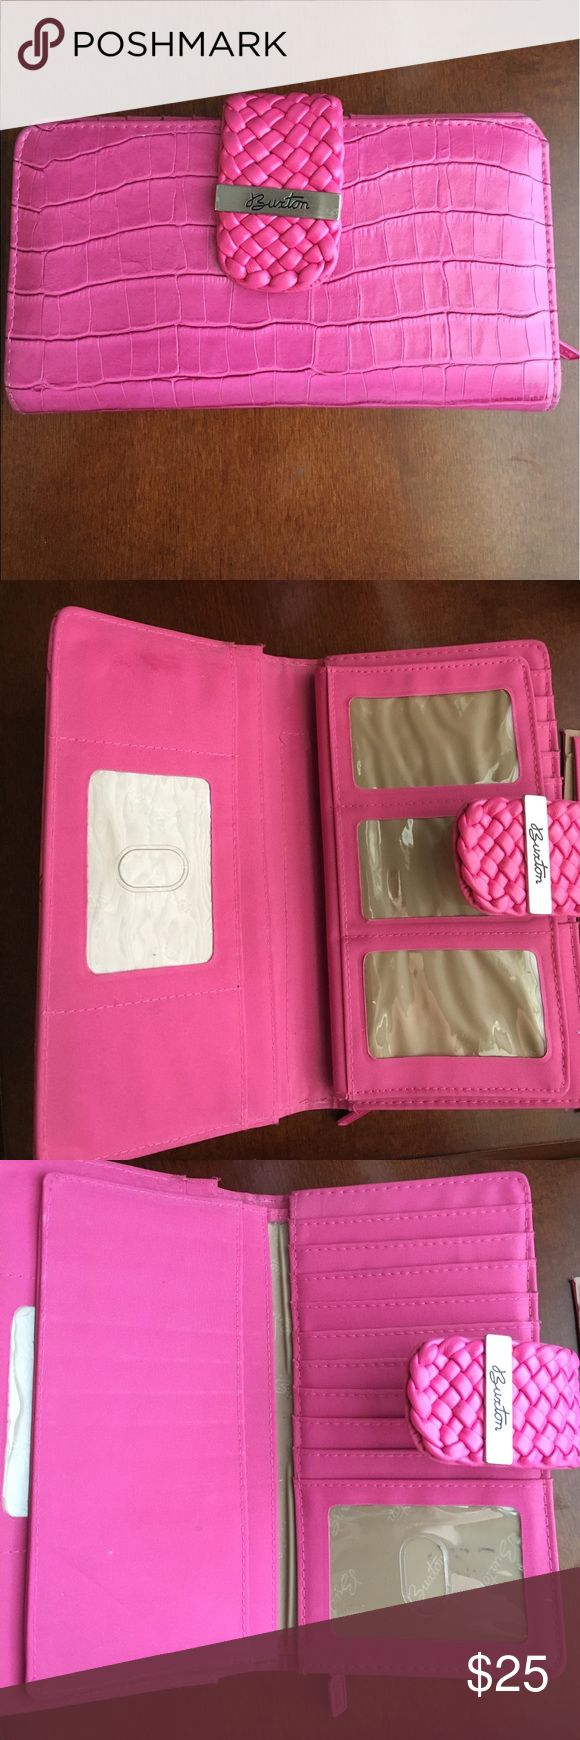 Wallet Pink Buxton wallet with multiple compartments as pictured. Snaps to close. Also, comes with a piece that can be removed or slid in (last 2 pictures). Excellent condition. Buxton Bags Wallets